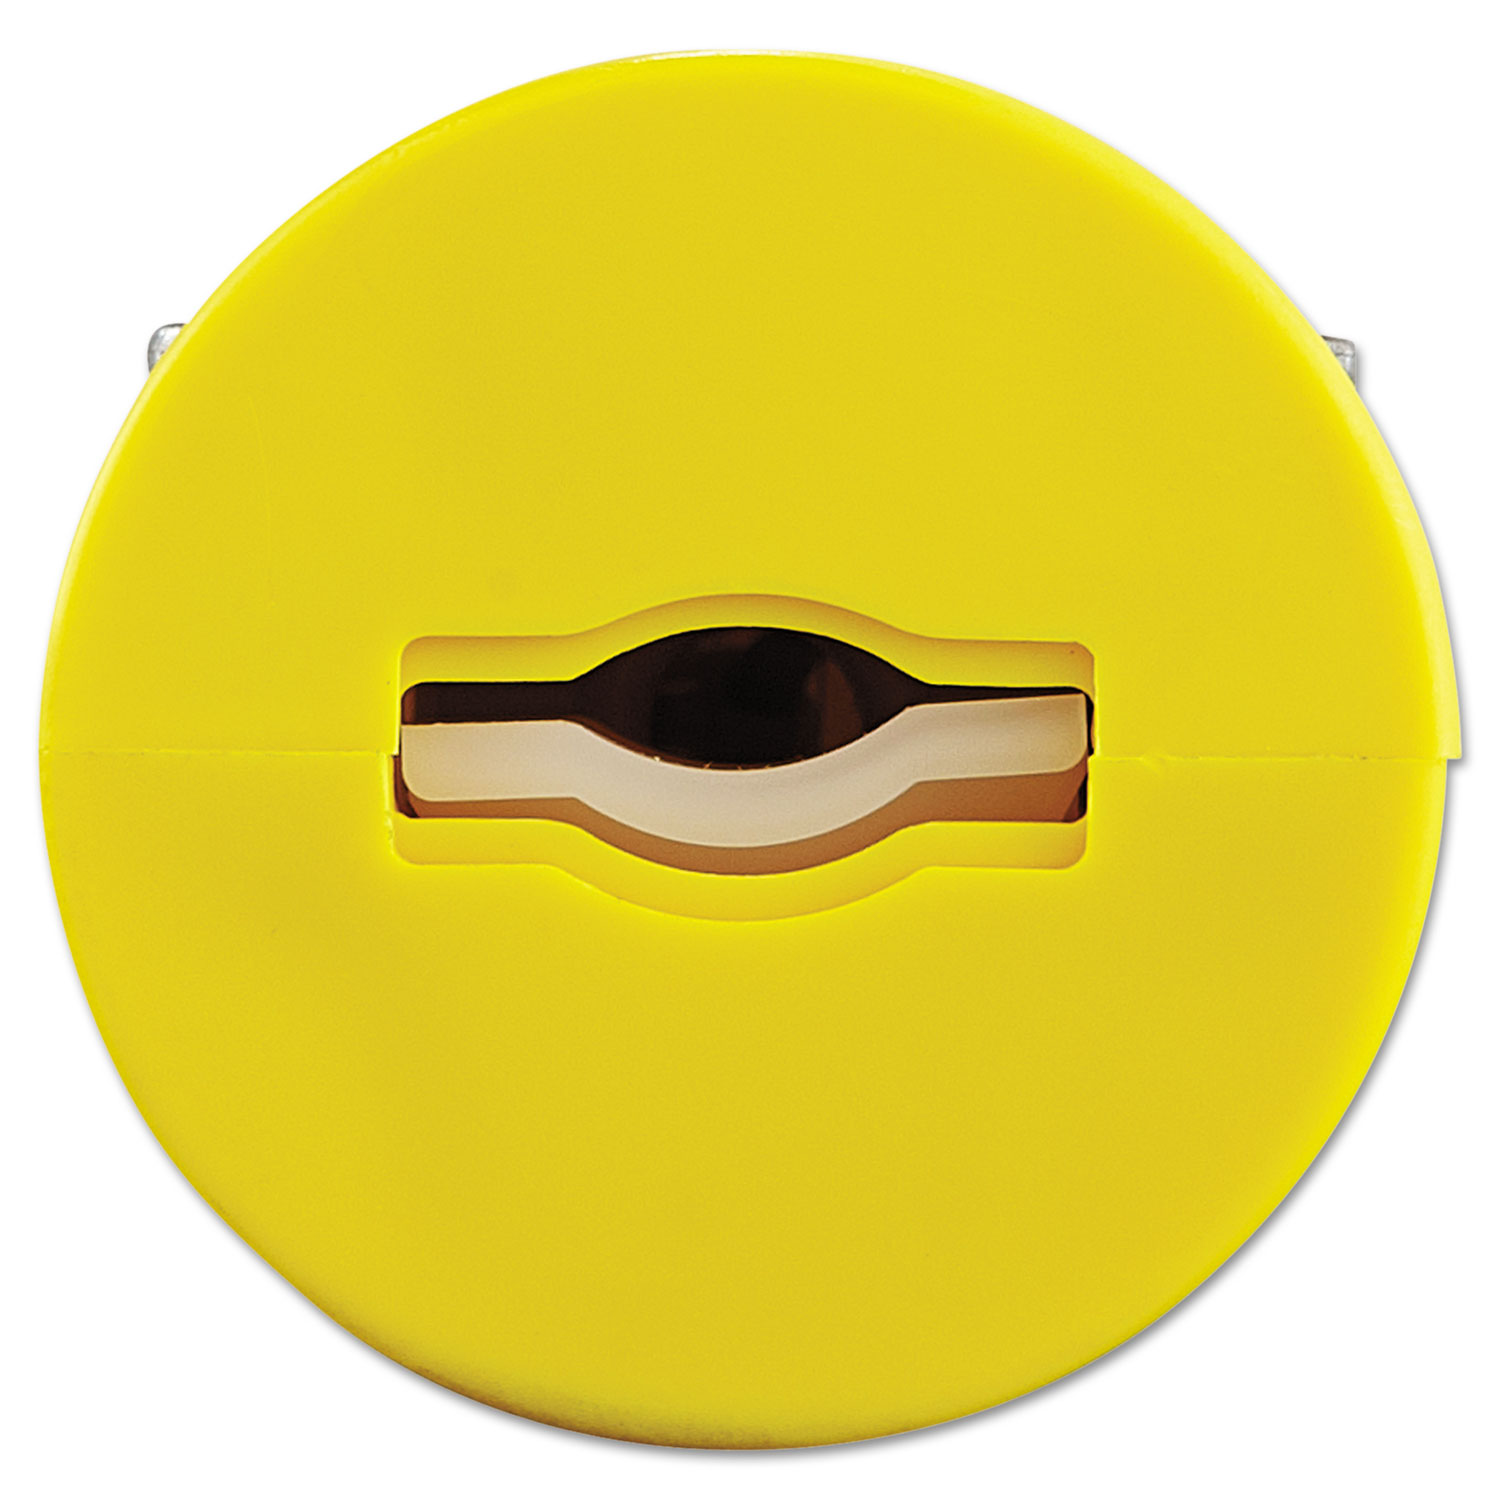 Super-Safeway Female-End Replacement Connector, NEMA 5 15, Rubber, Yellow